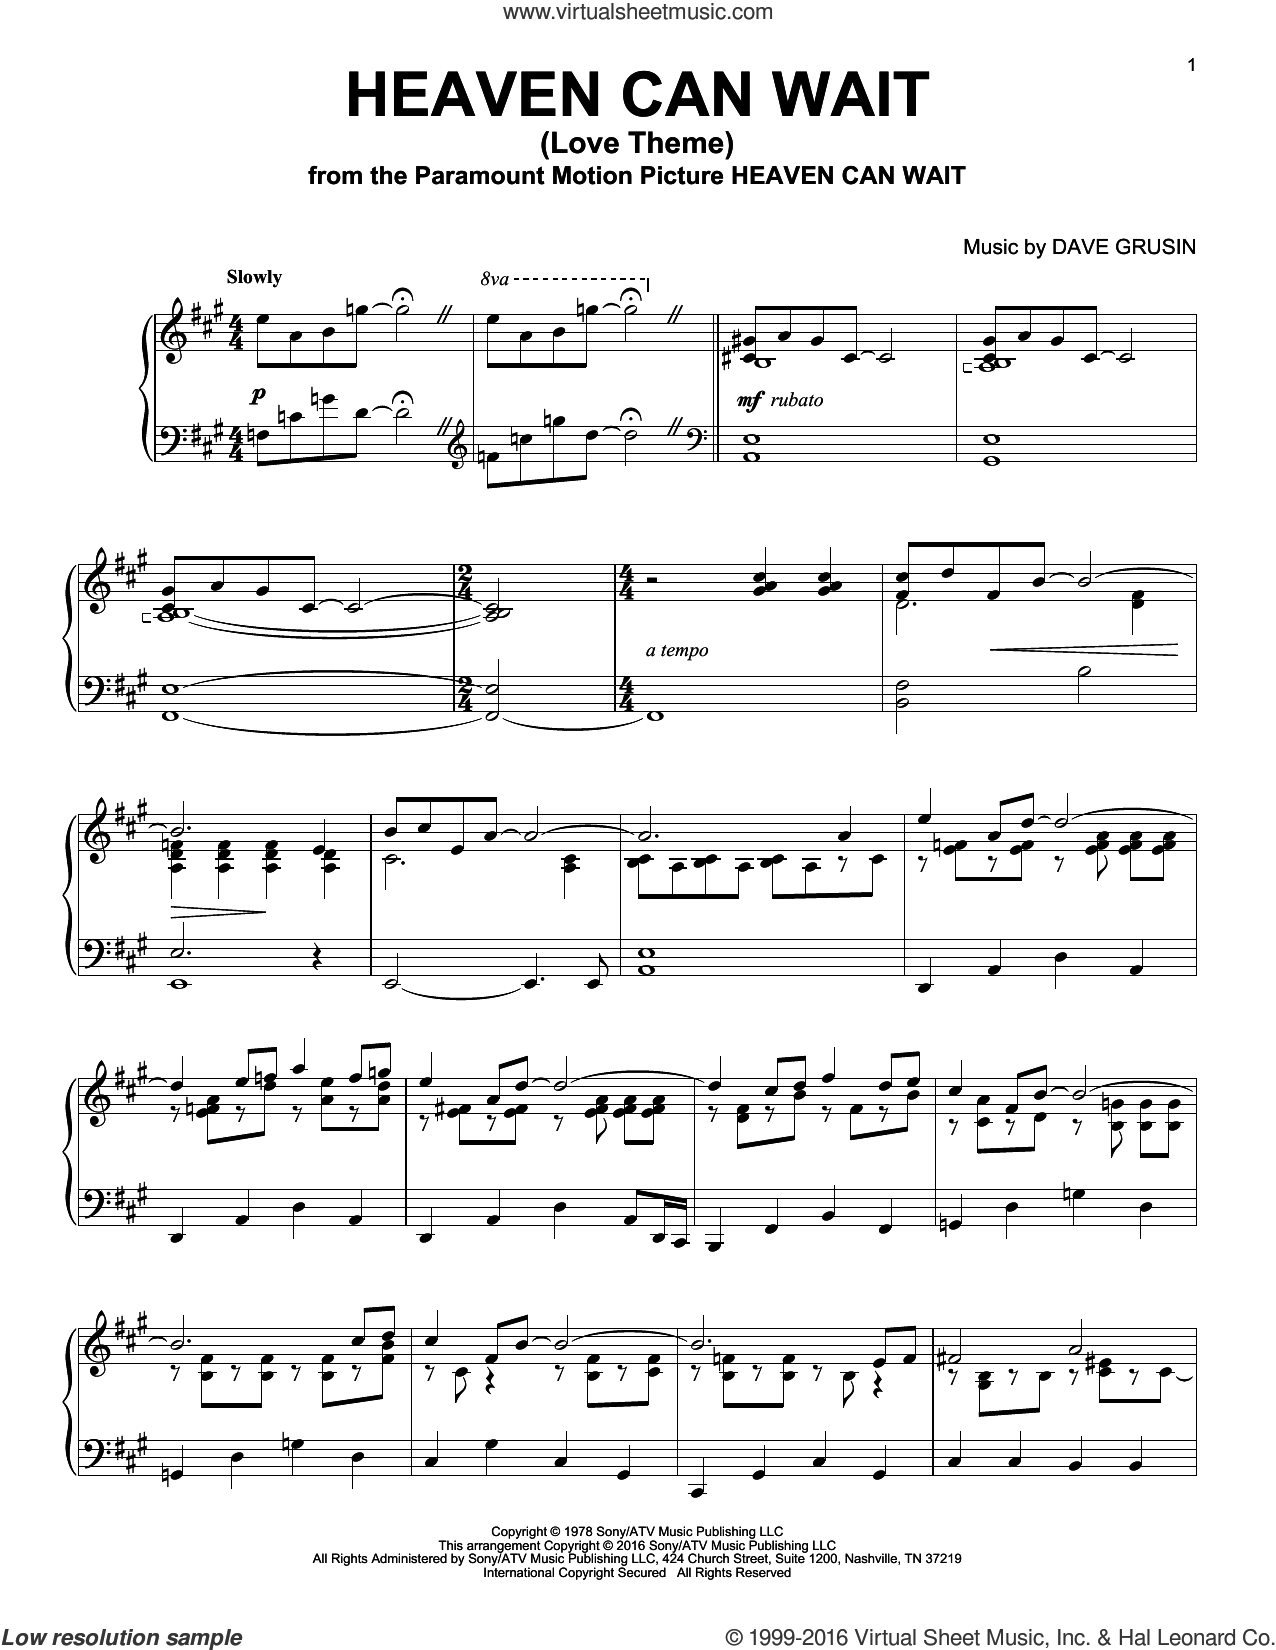 Heaven Can Wait (Love Theme) sheet music for piano solo by Dave Grusin, intermediate skill level